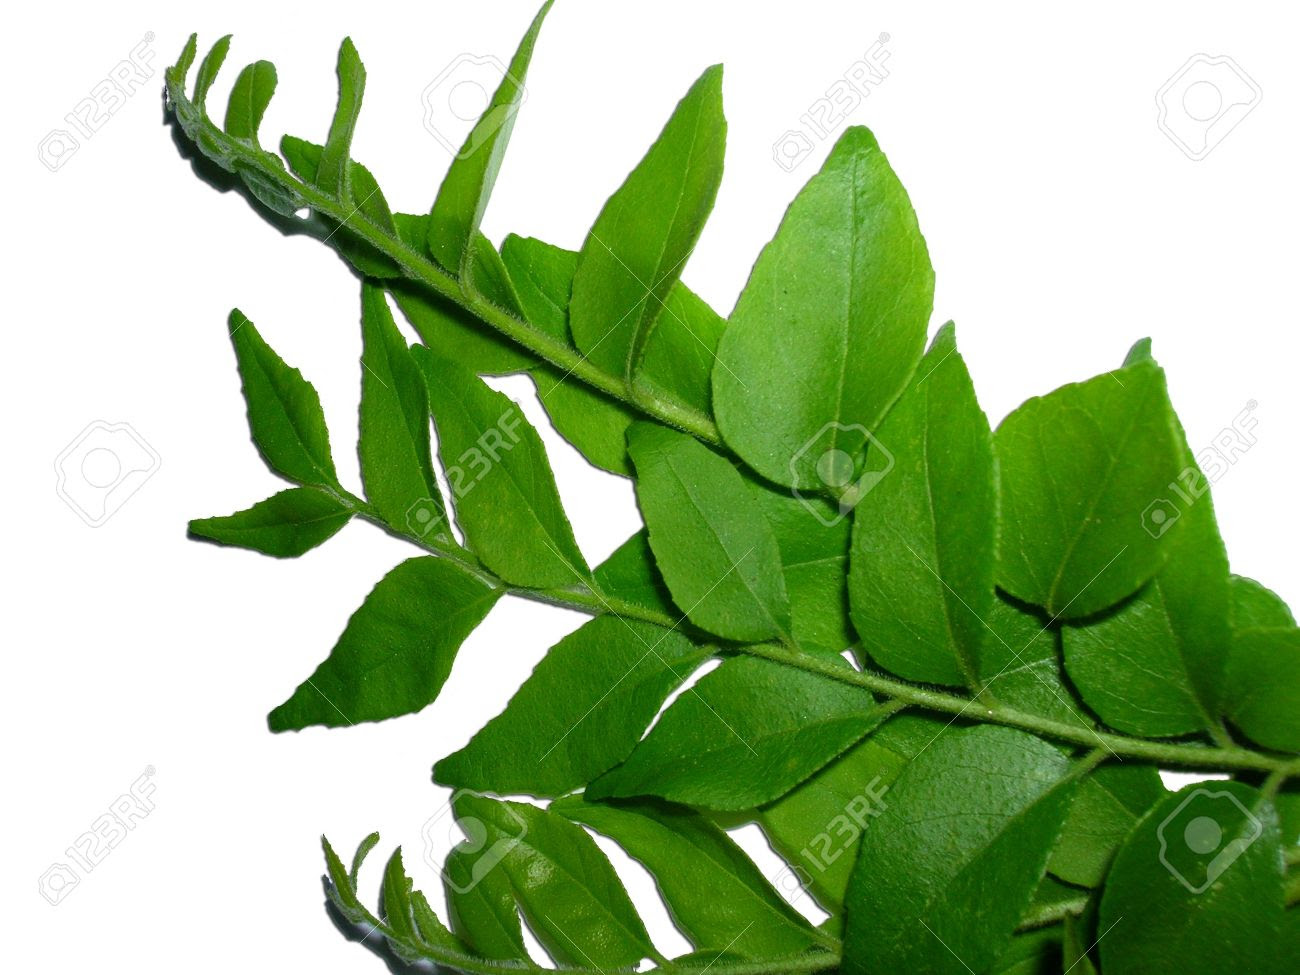 Image result for images of curry leaves